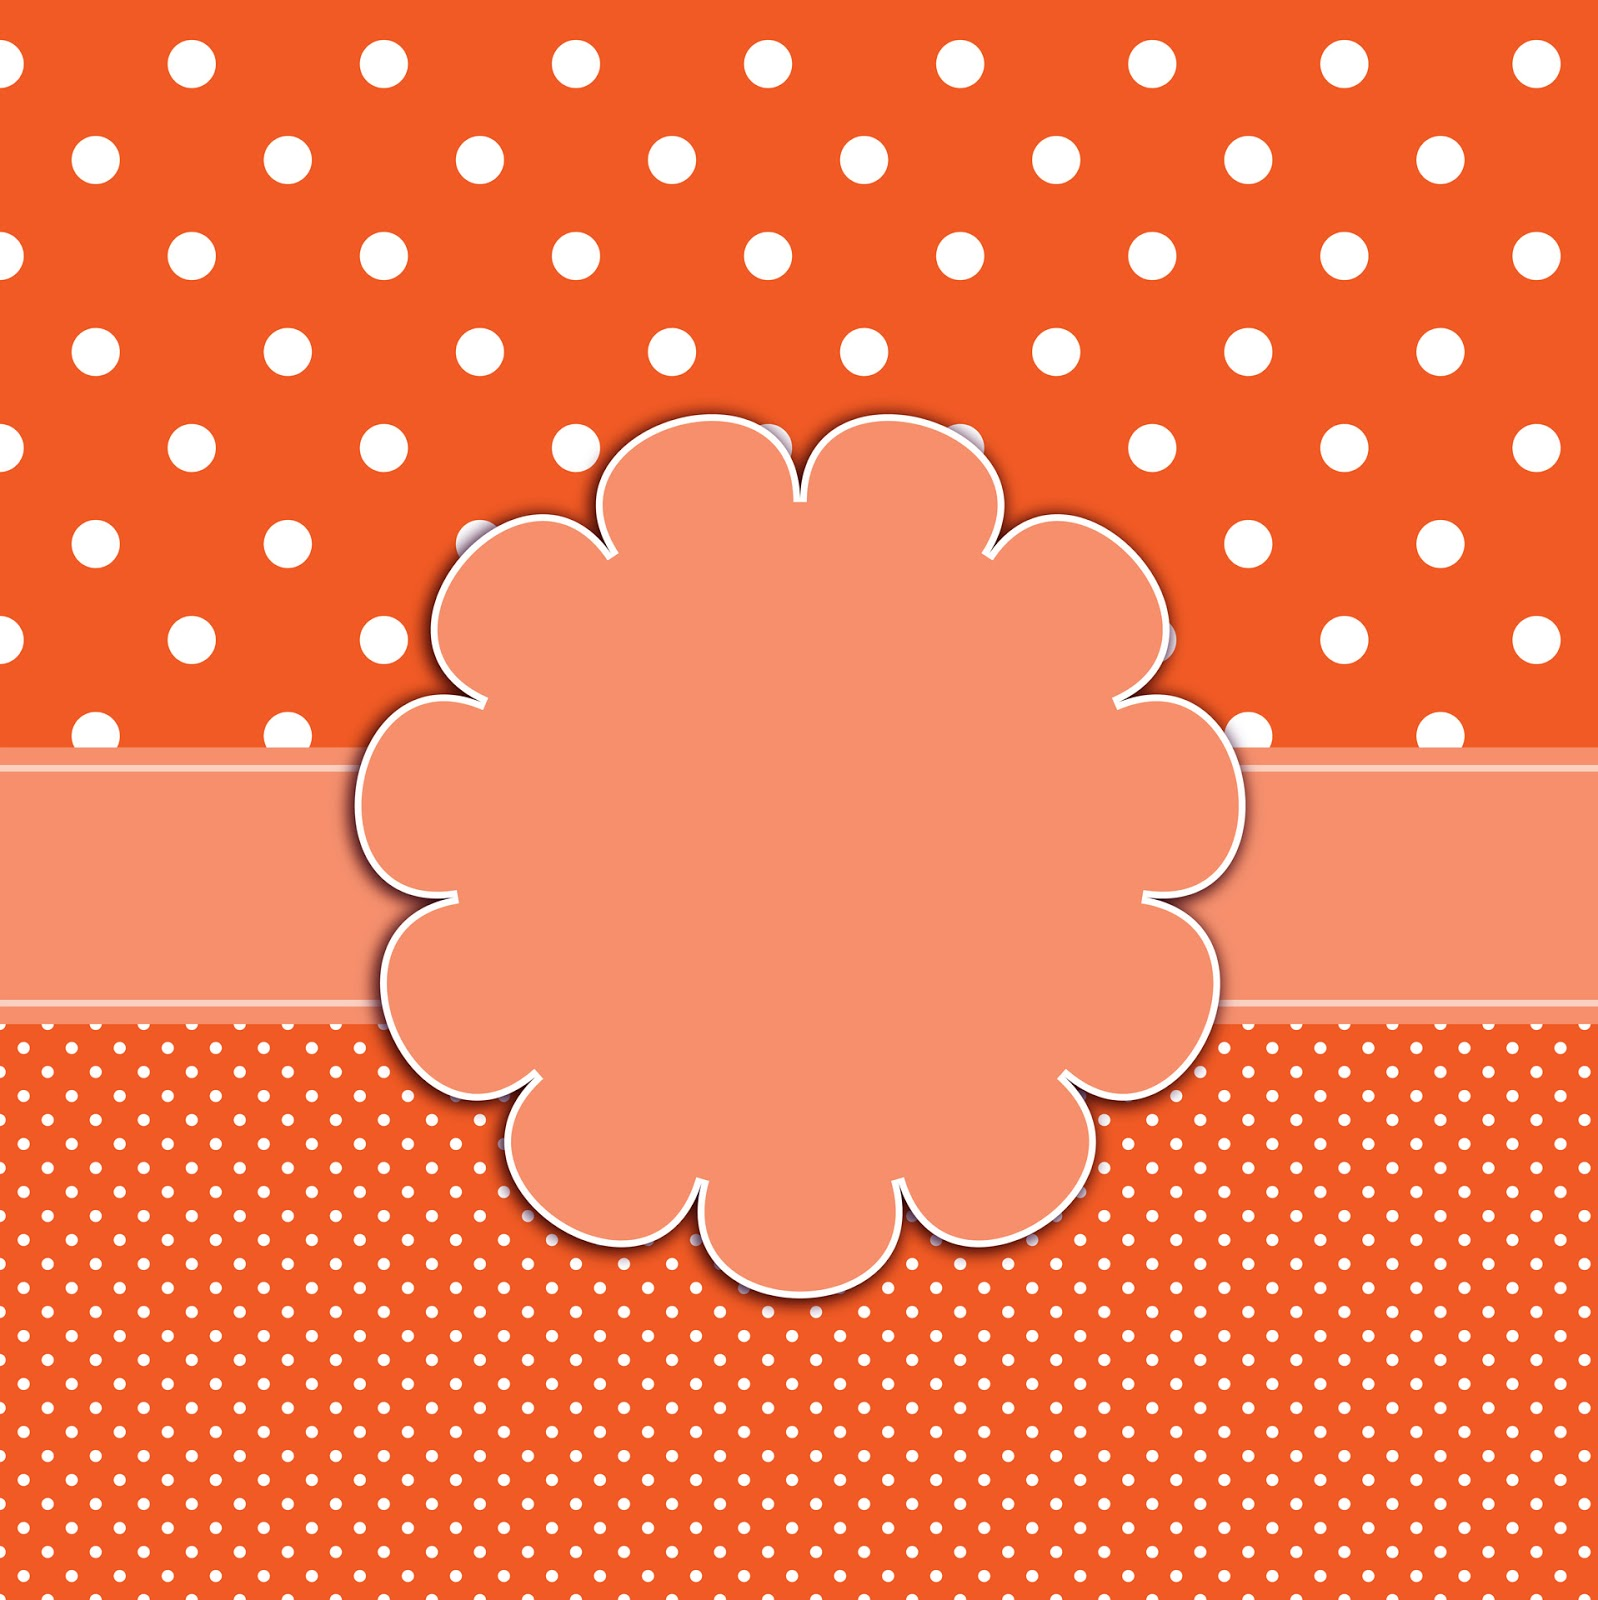 gift ornament, Orange polka dots background #3444